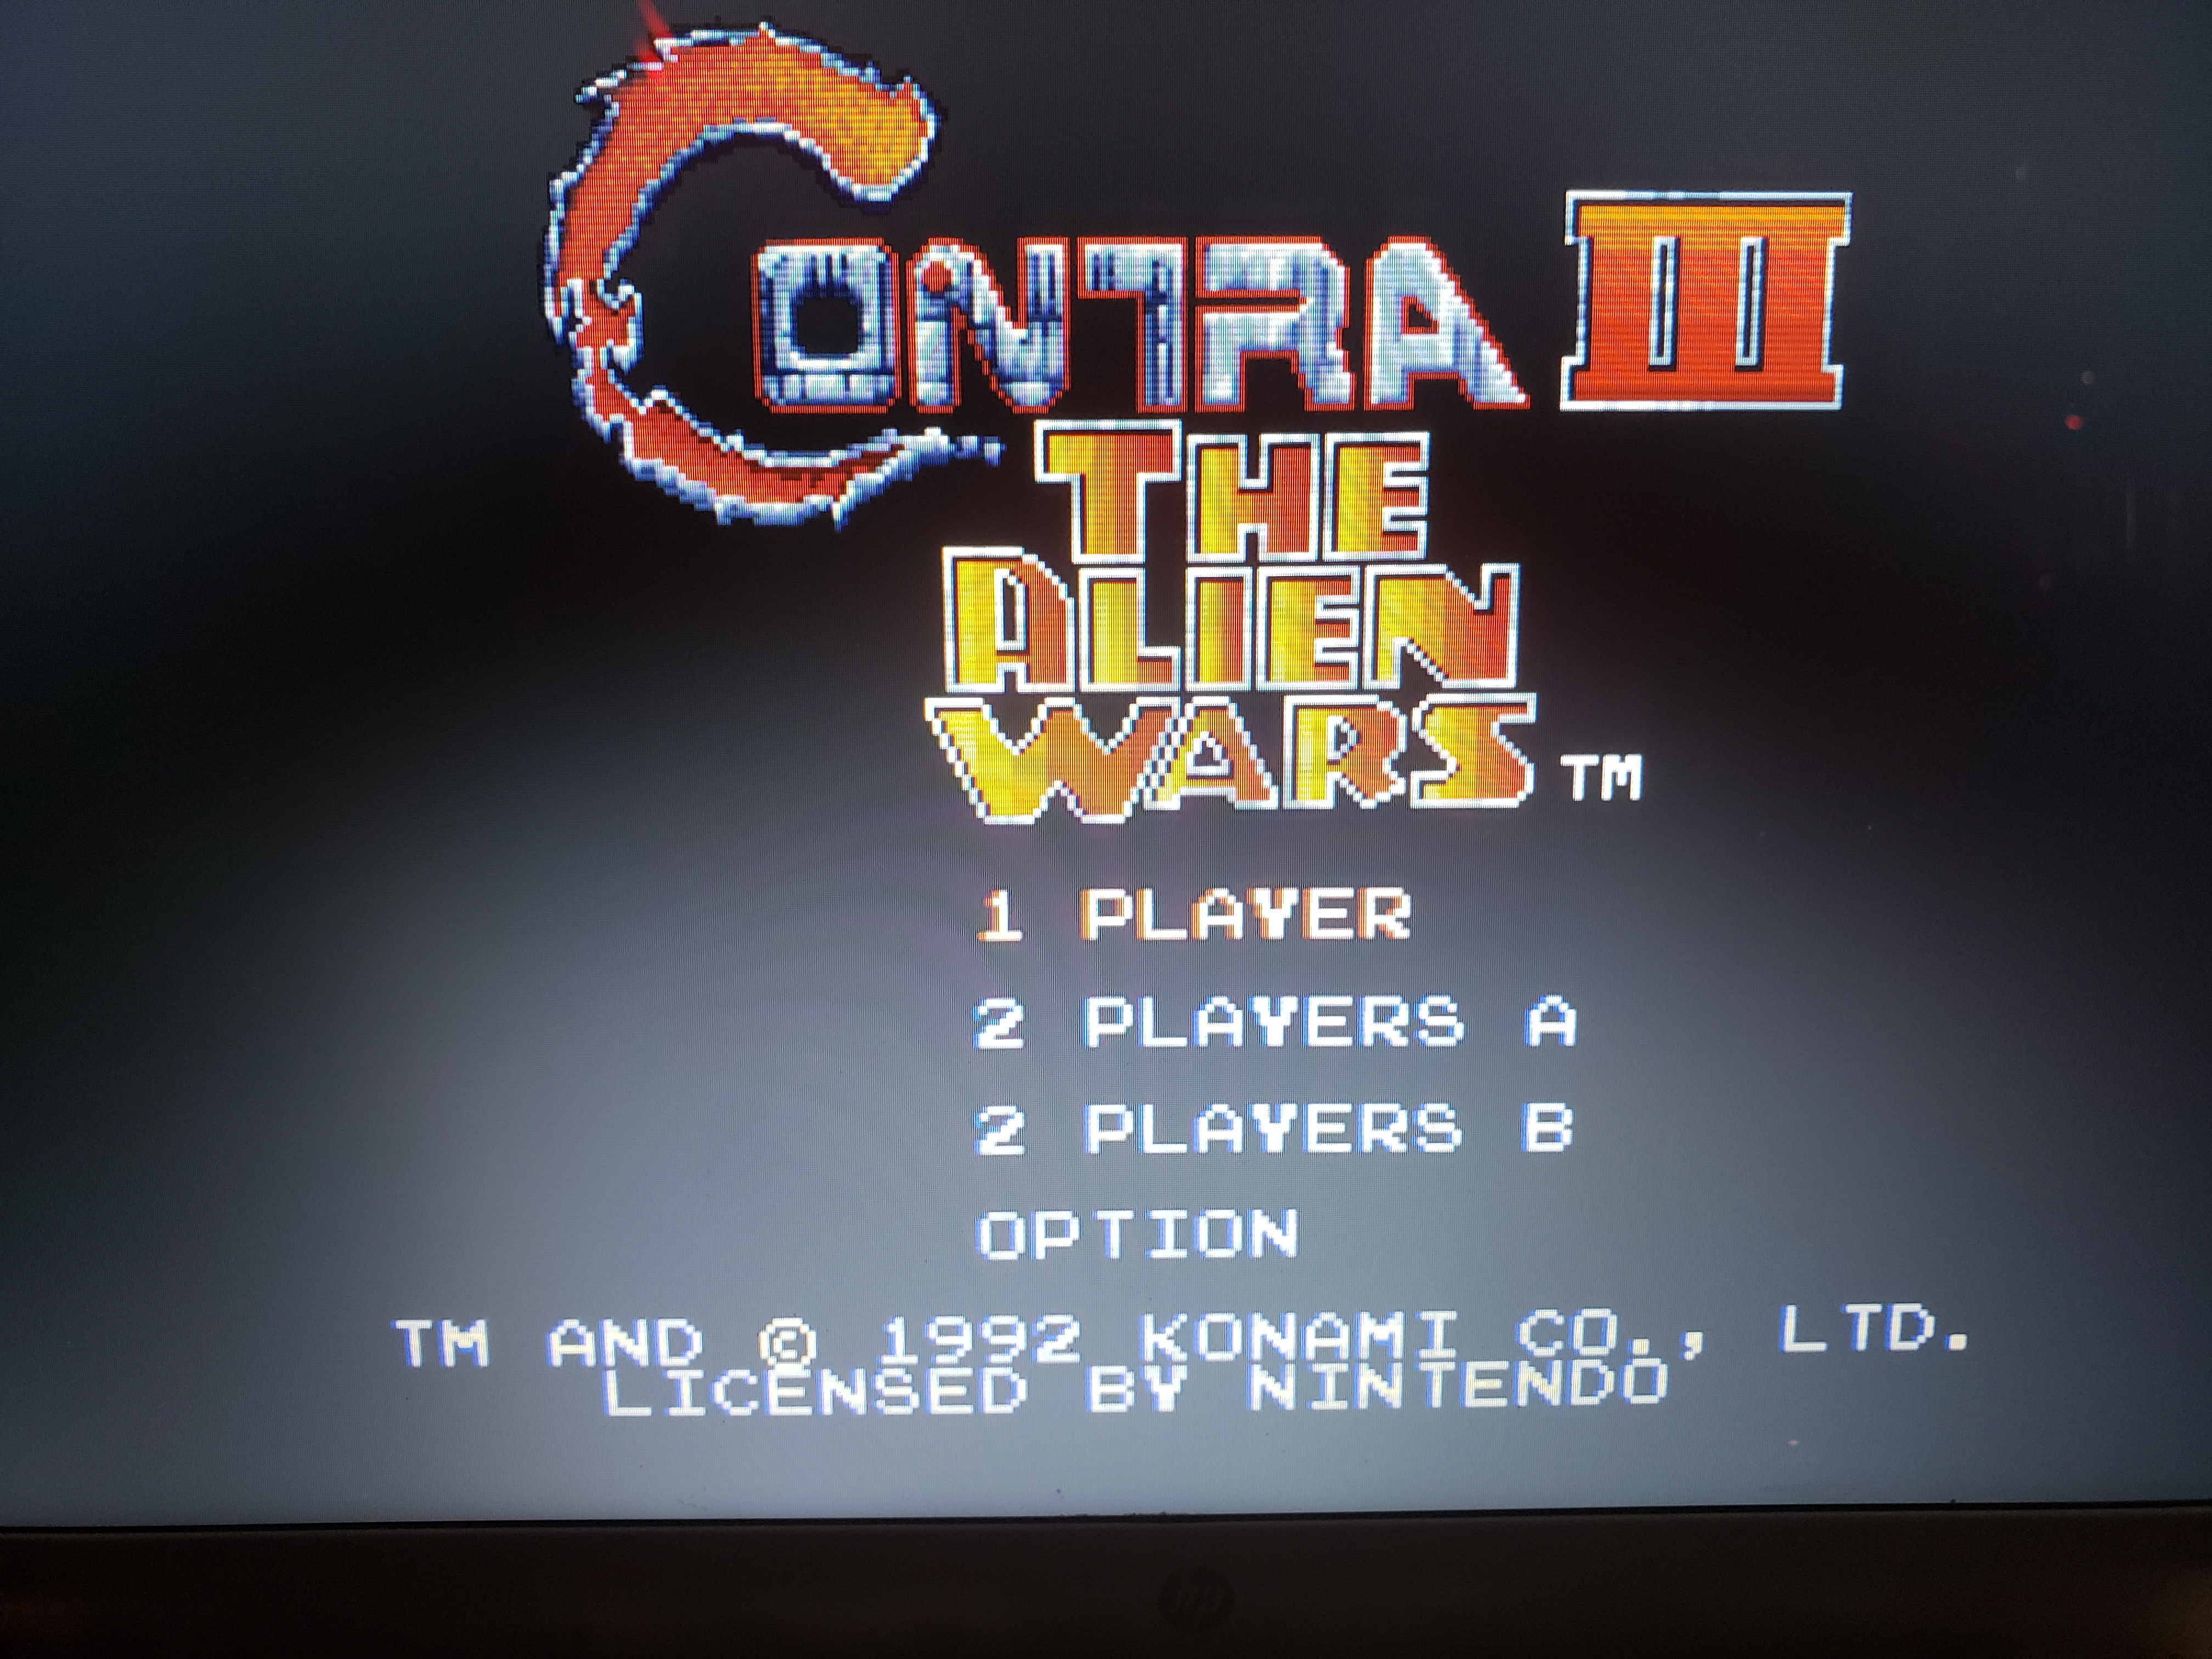 Contra III: The Alien Wars [Normal] 421,965 points